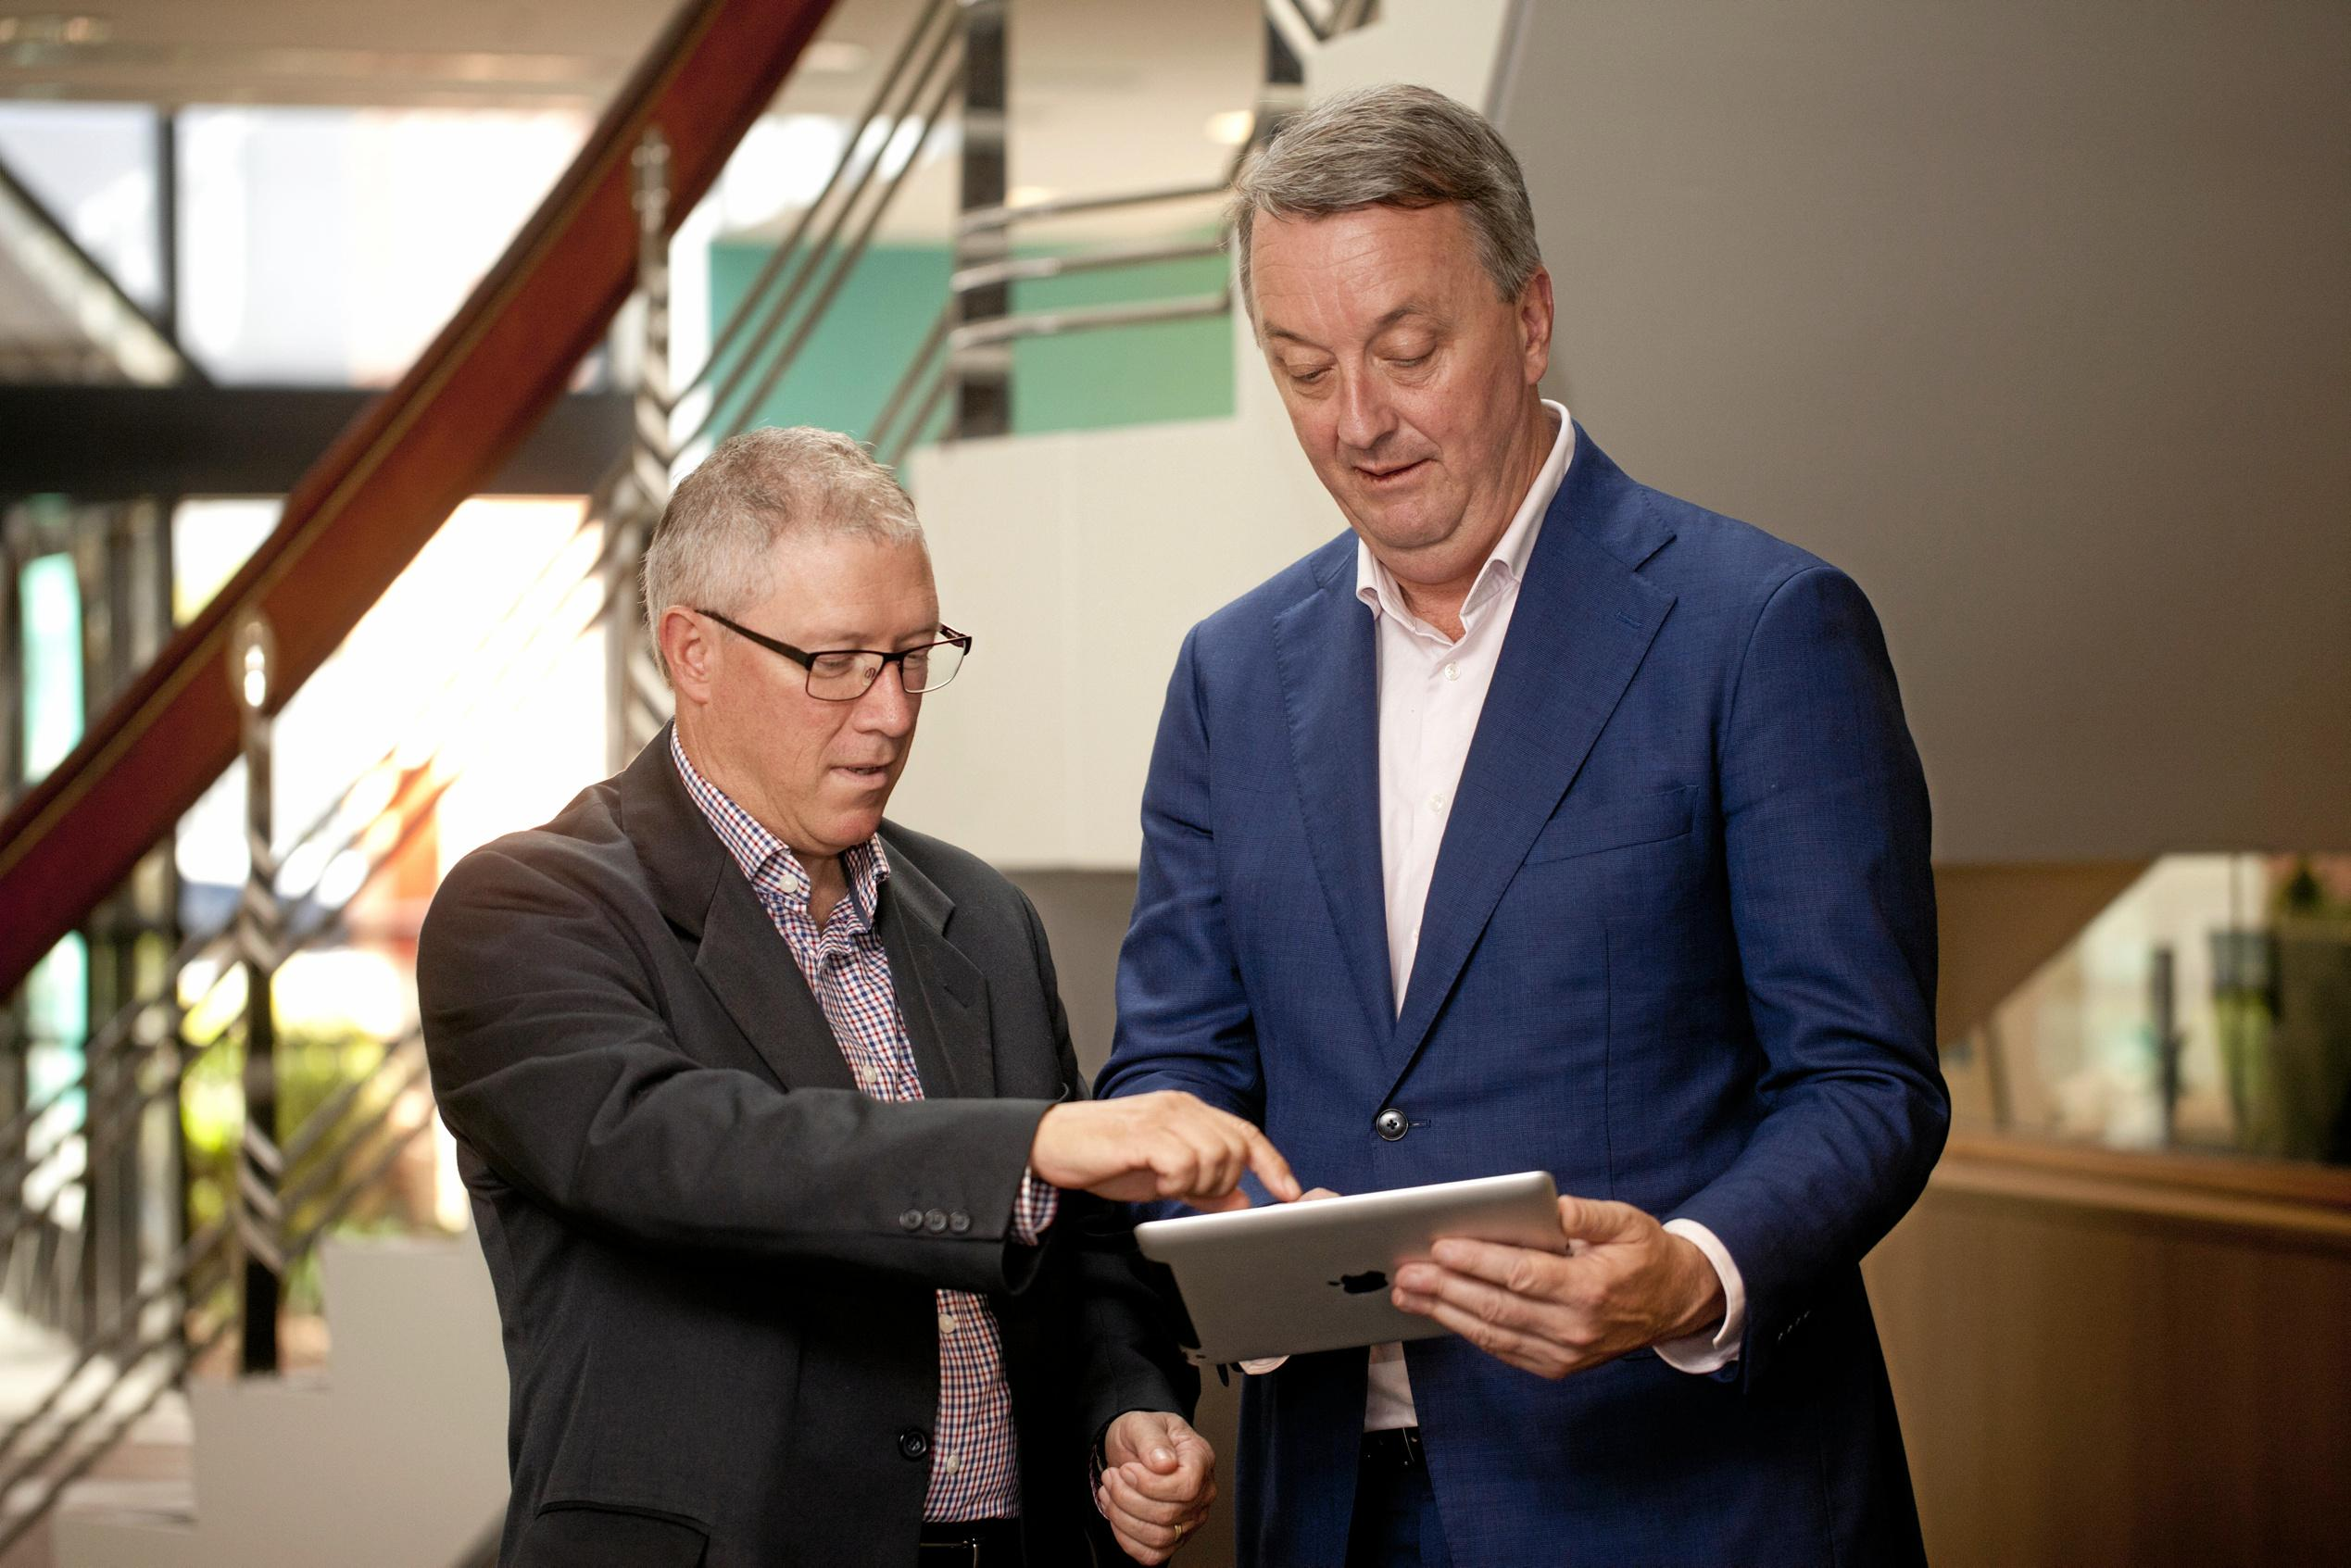 DEMENTIA LIVING: Norm Smith, a carer, demonstrating The Dementia-Friendly Home app with Martin Foley MP, Victorian Minister for Housing, Disability and Ageing.